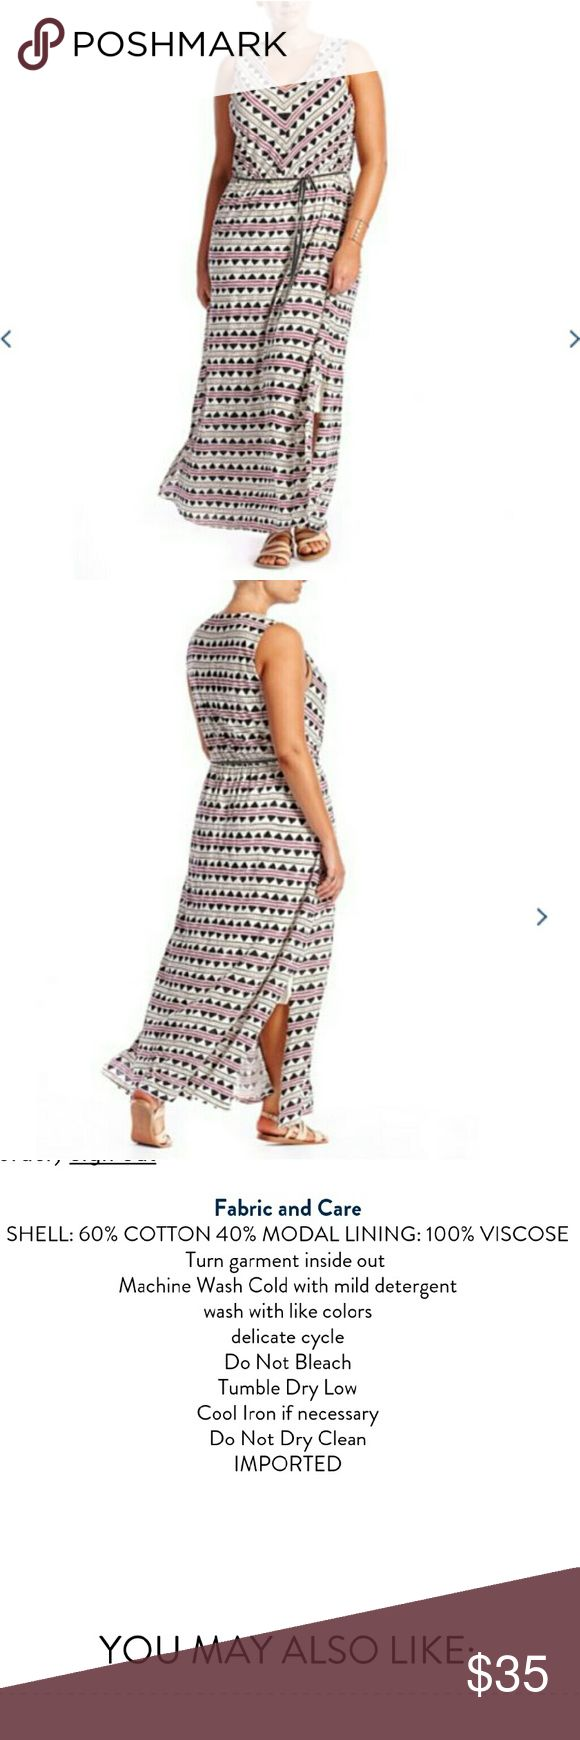 NWT Lucky Brand 3XL tribal maxi dress Super soft and comfy dress. New with tags, does not include belt that is shown in first 2 photos but can easily substitute with another belt of your own. Lucky Brand Dresses Maxi